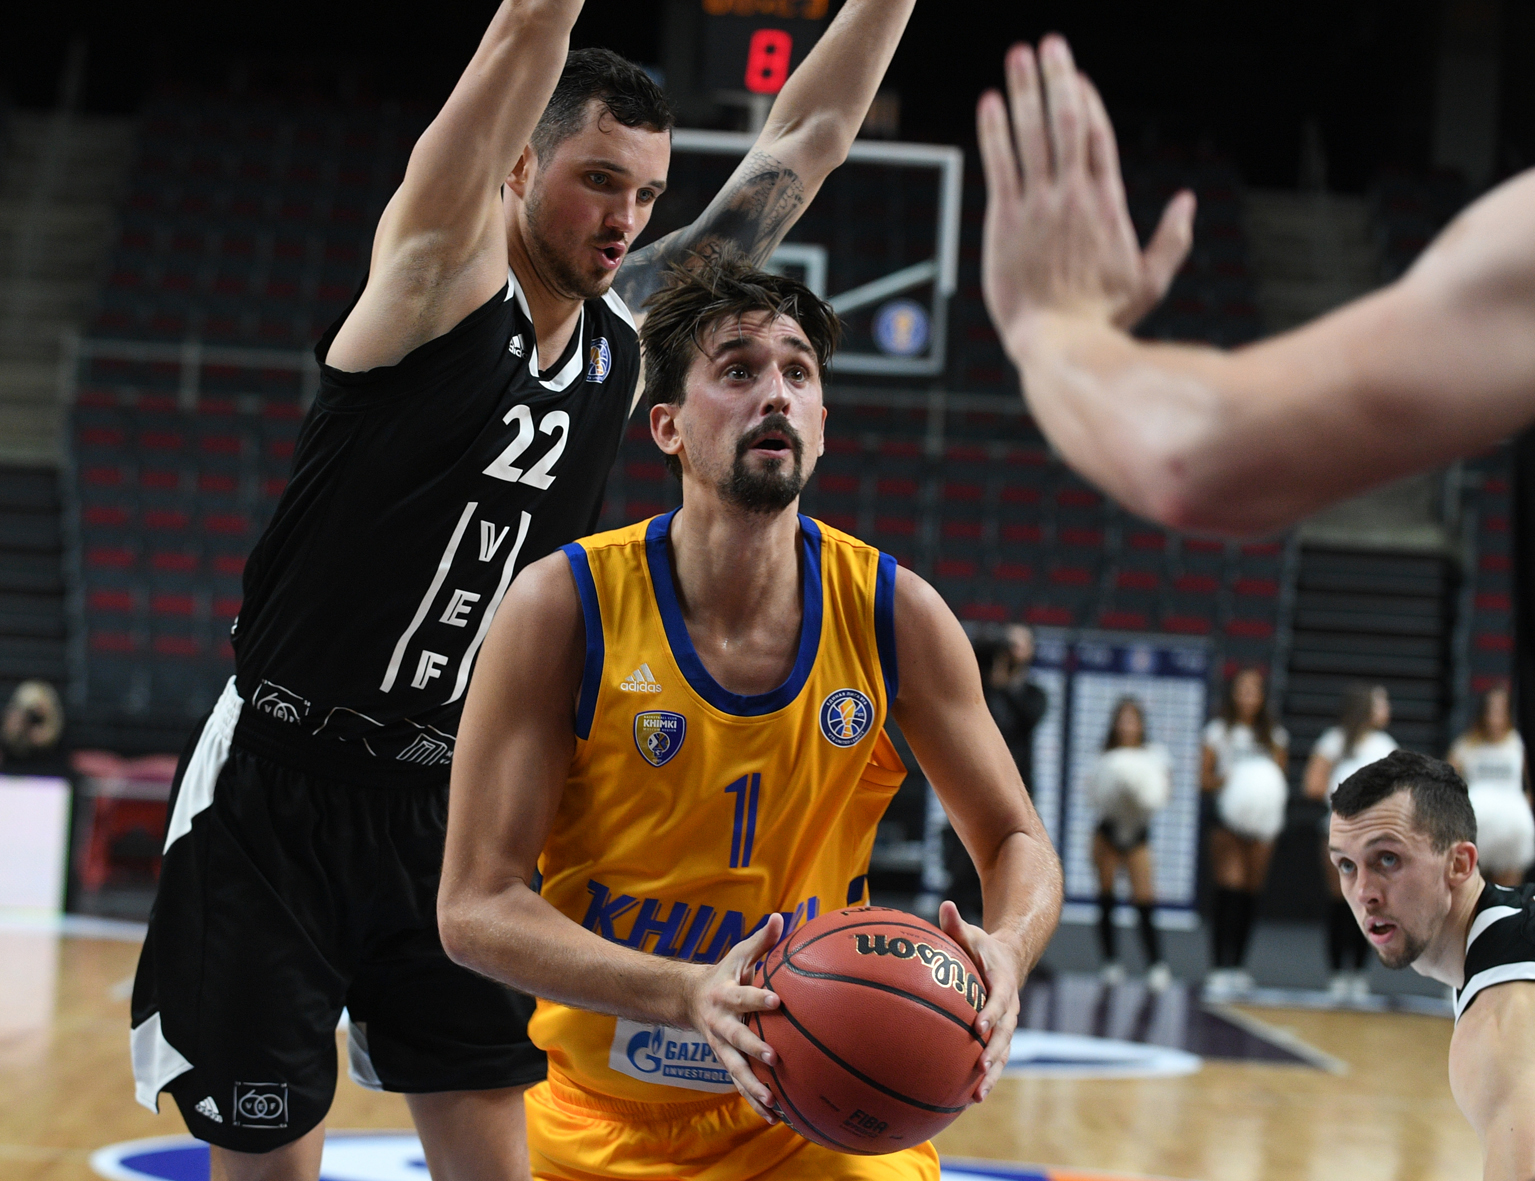 Khimki Buries VEF Early, Shved Scores 23